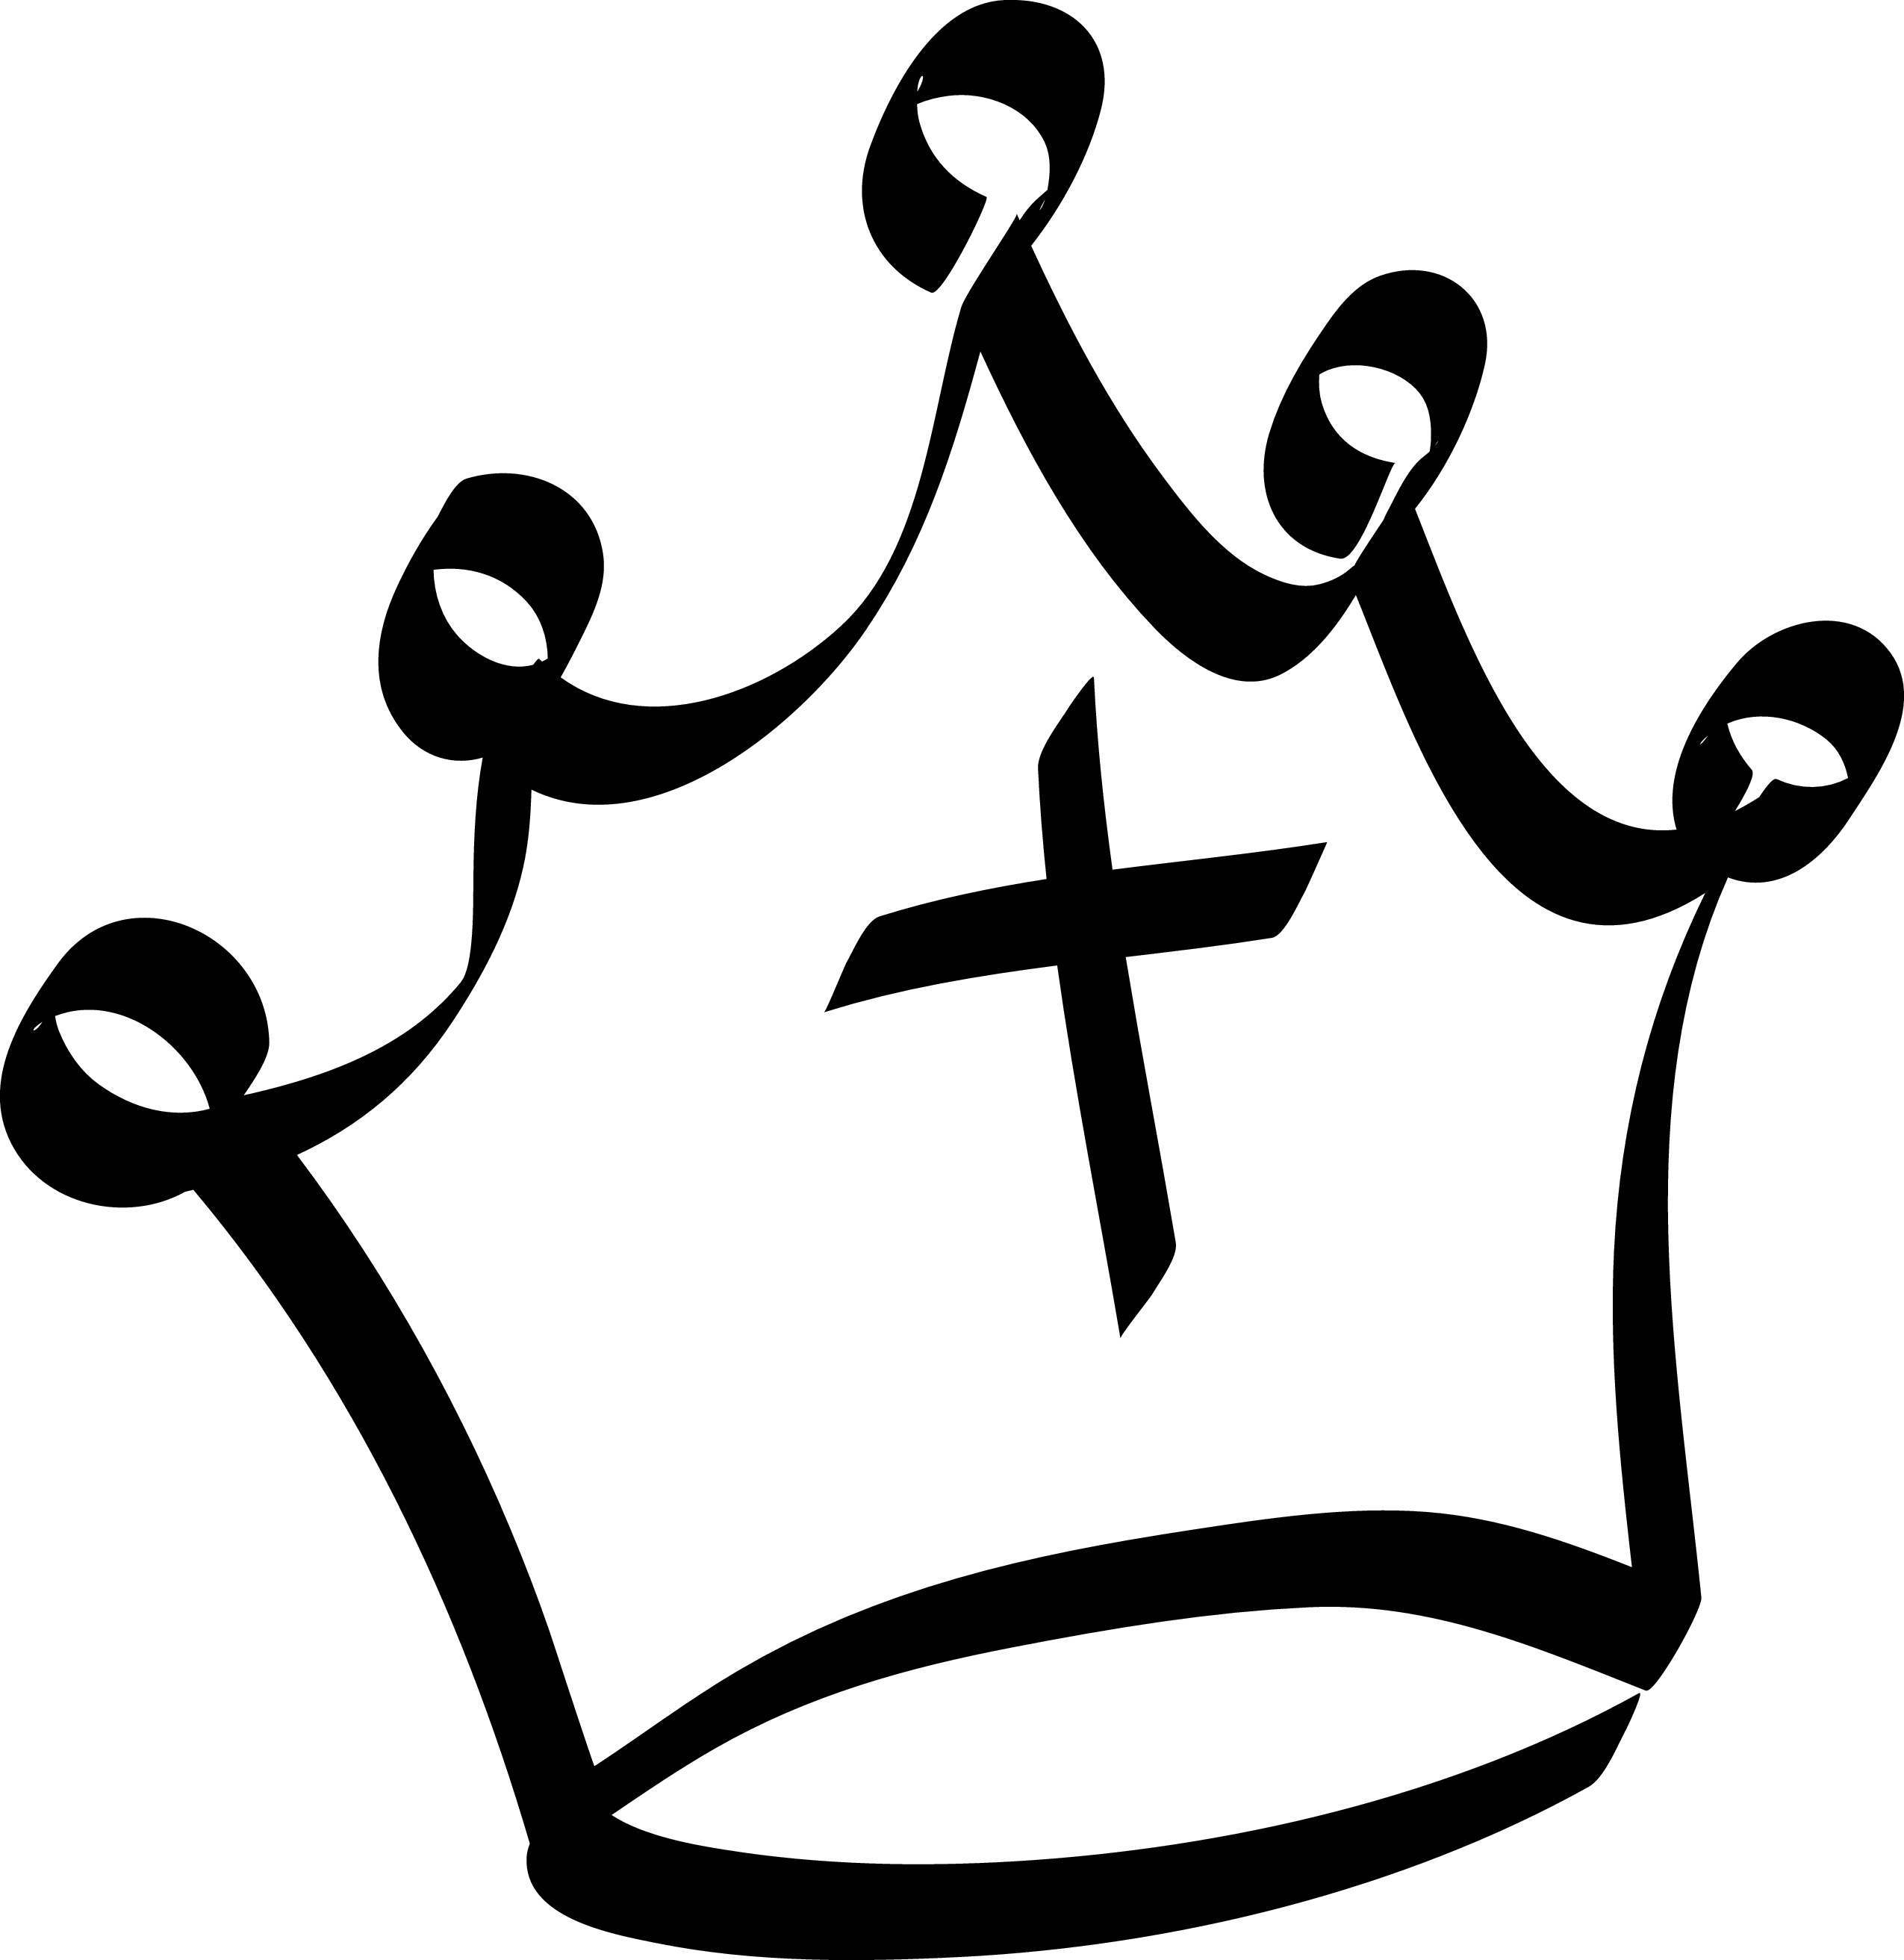 2550x2625 Crown Clipart Simple Crown